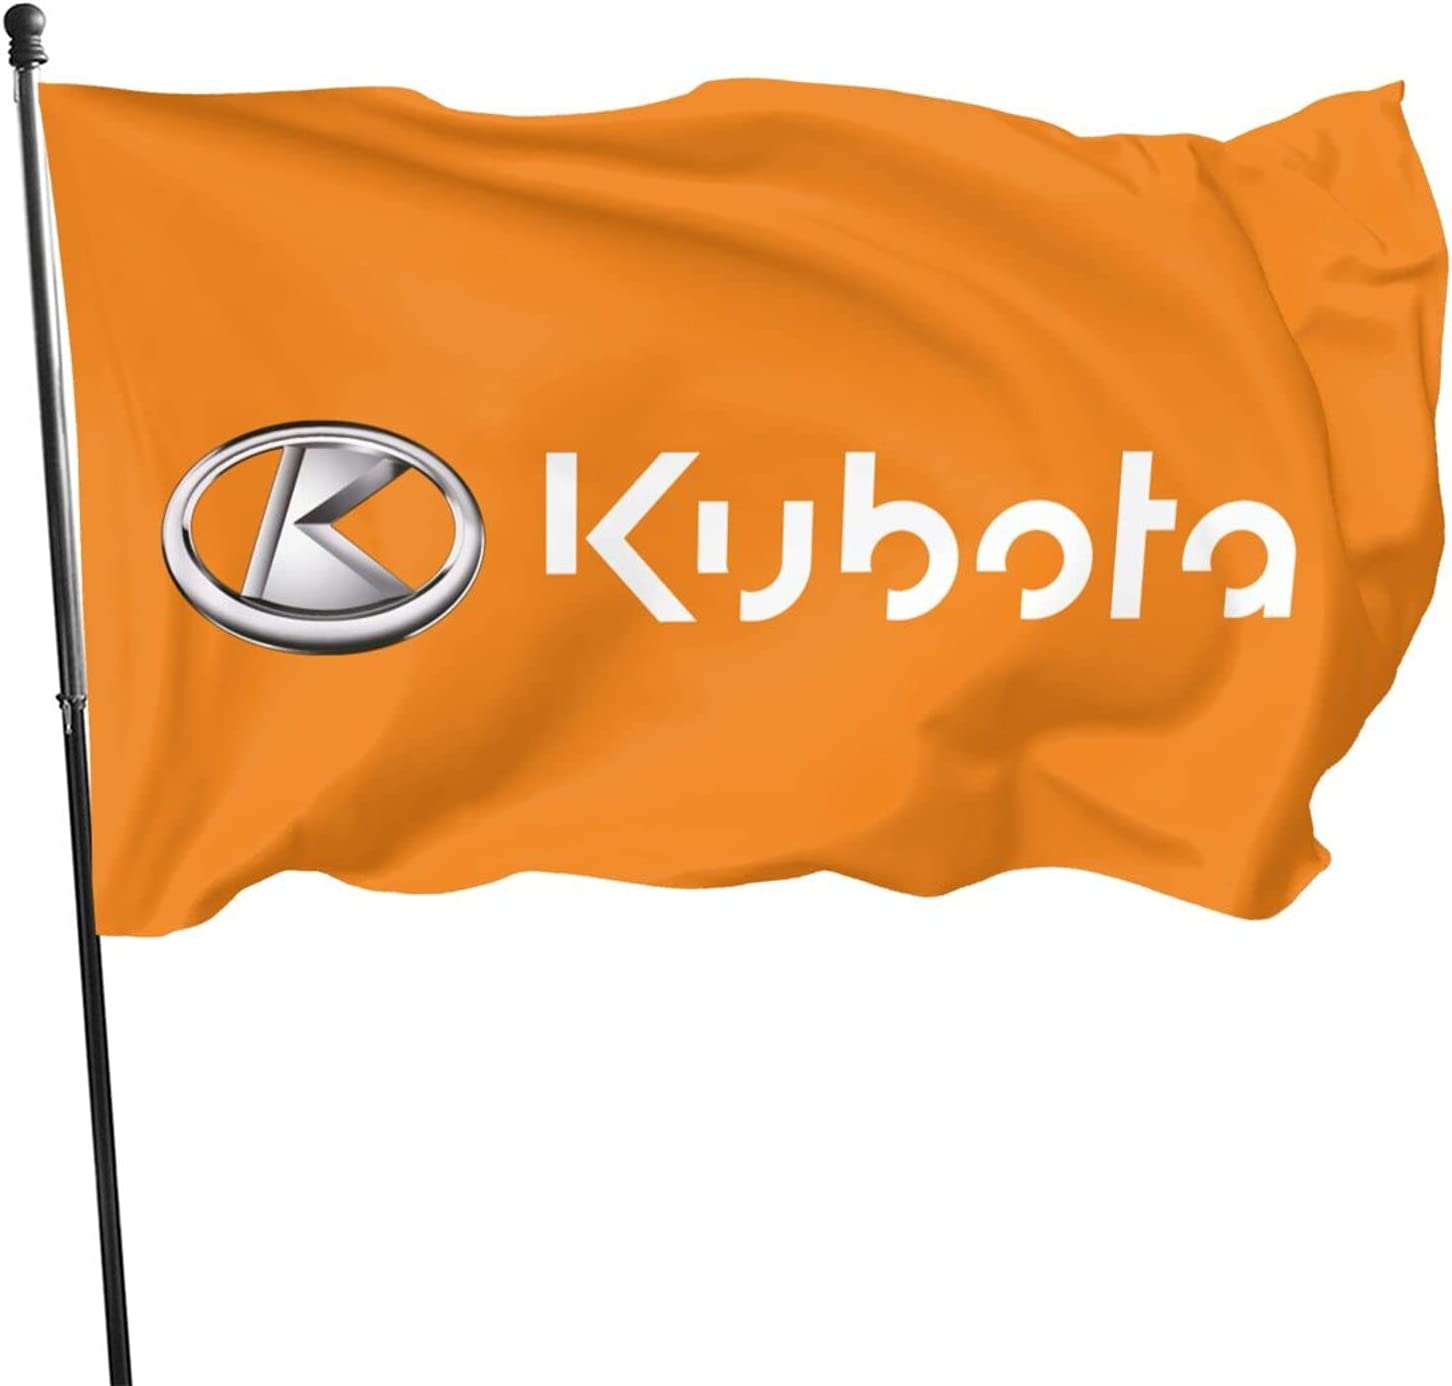 Kubota Flags Outdoor Banner Garden Home Decor Flag Colorful Poster Sign 3x5 Ft